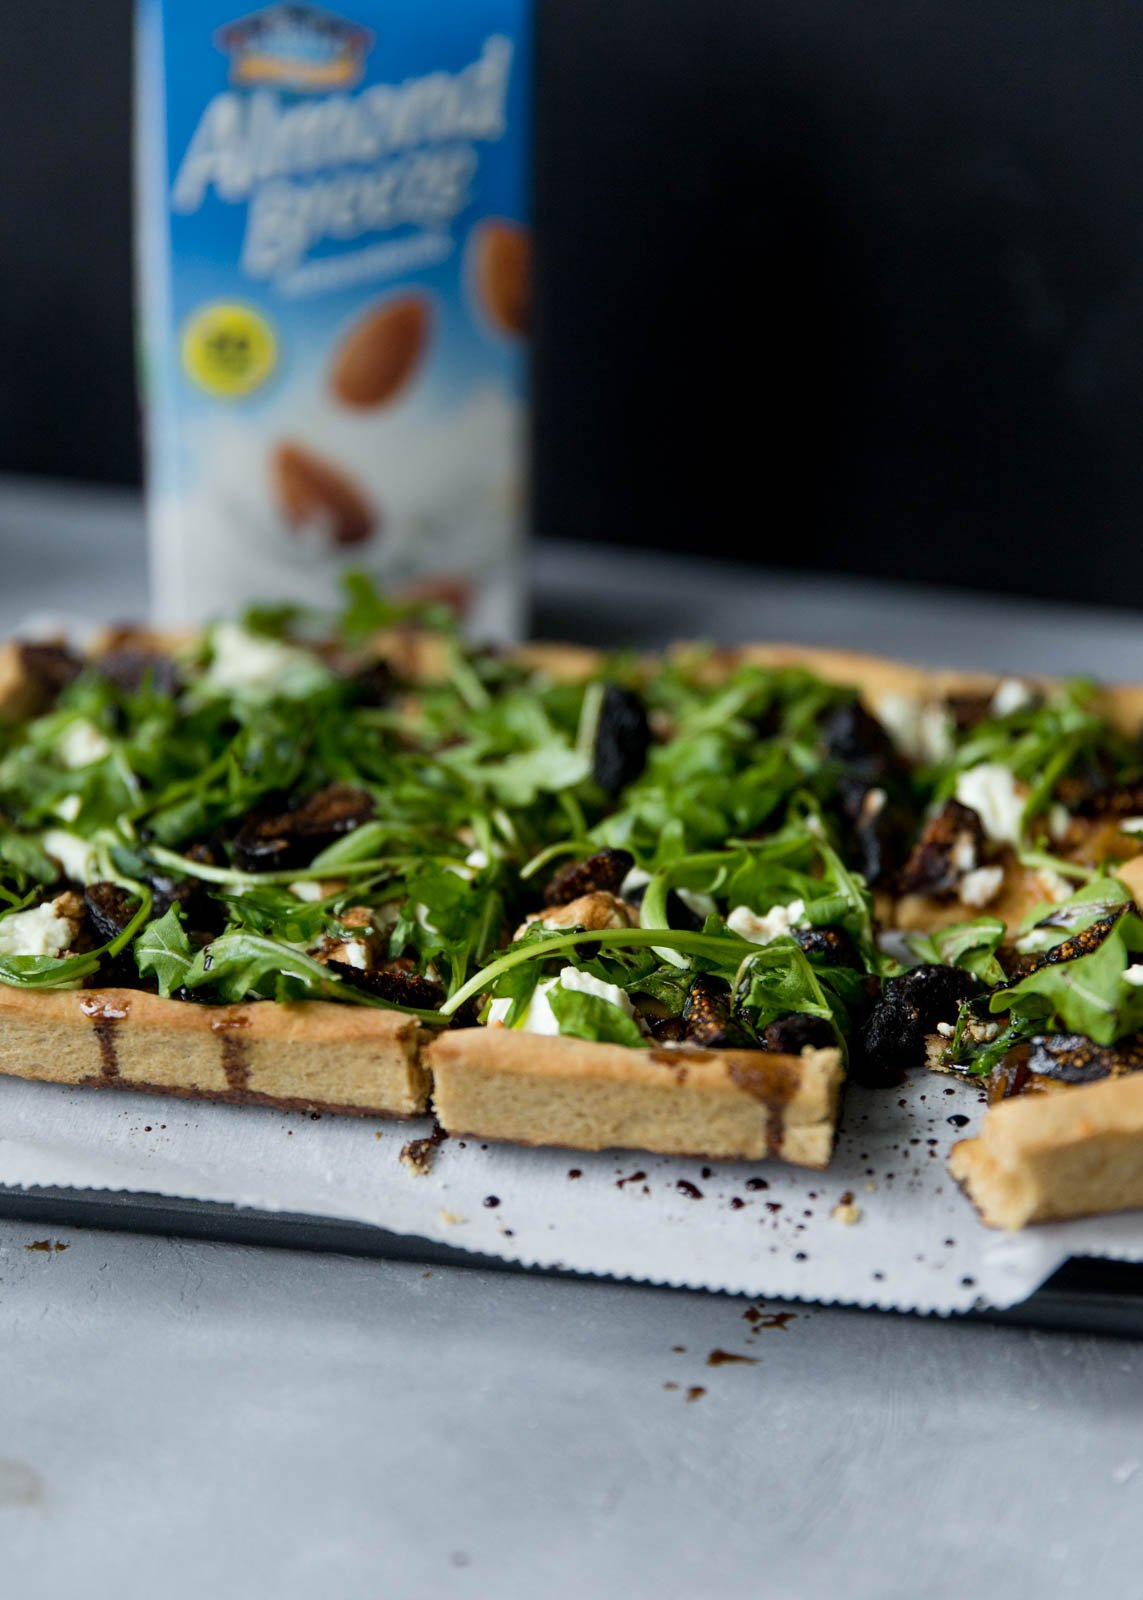 goat cheese pizza topped with arugula and figs with an almond breeze carton in the background